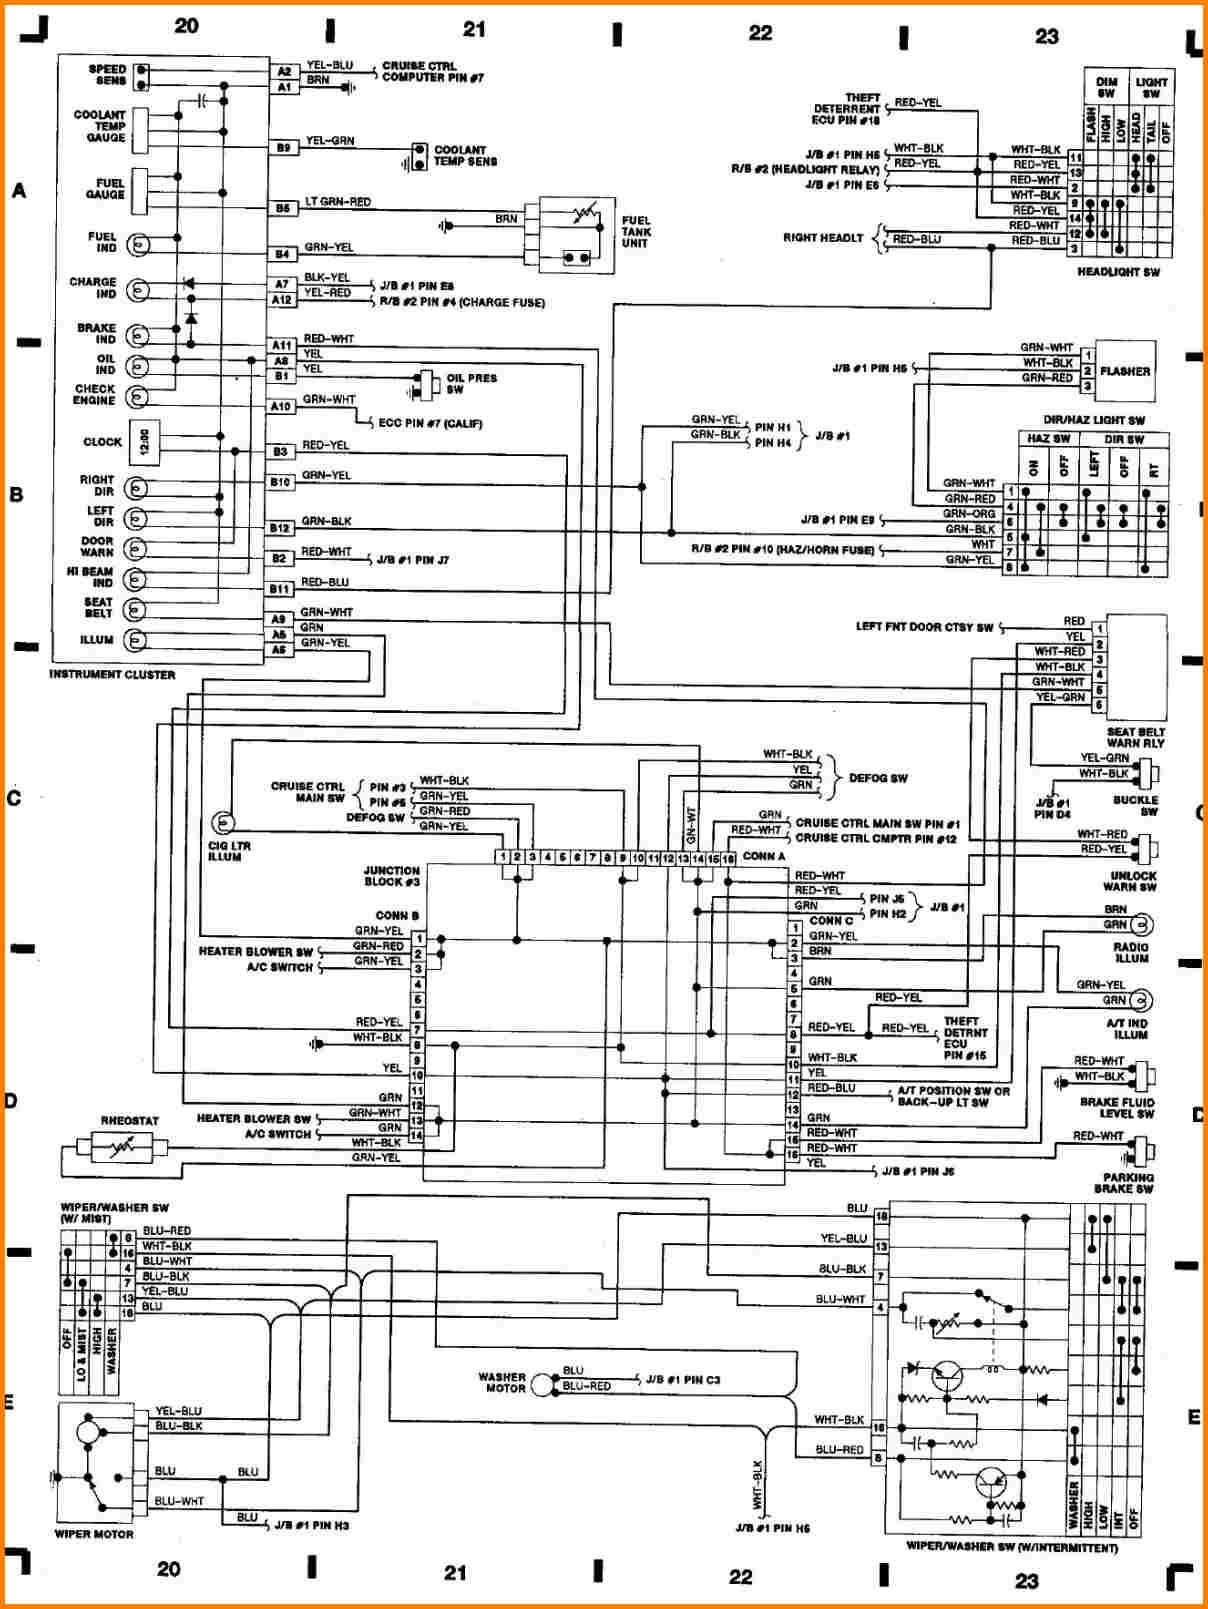 Diagram 2004 Toyota Tundra Radio Wiring Diagram Full Version Hd Quality Wiring Diagram Jaguarwiring2h Atuttasosta It